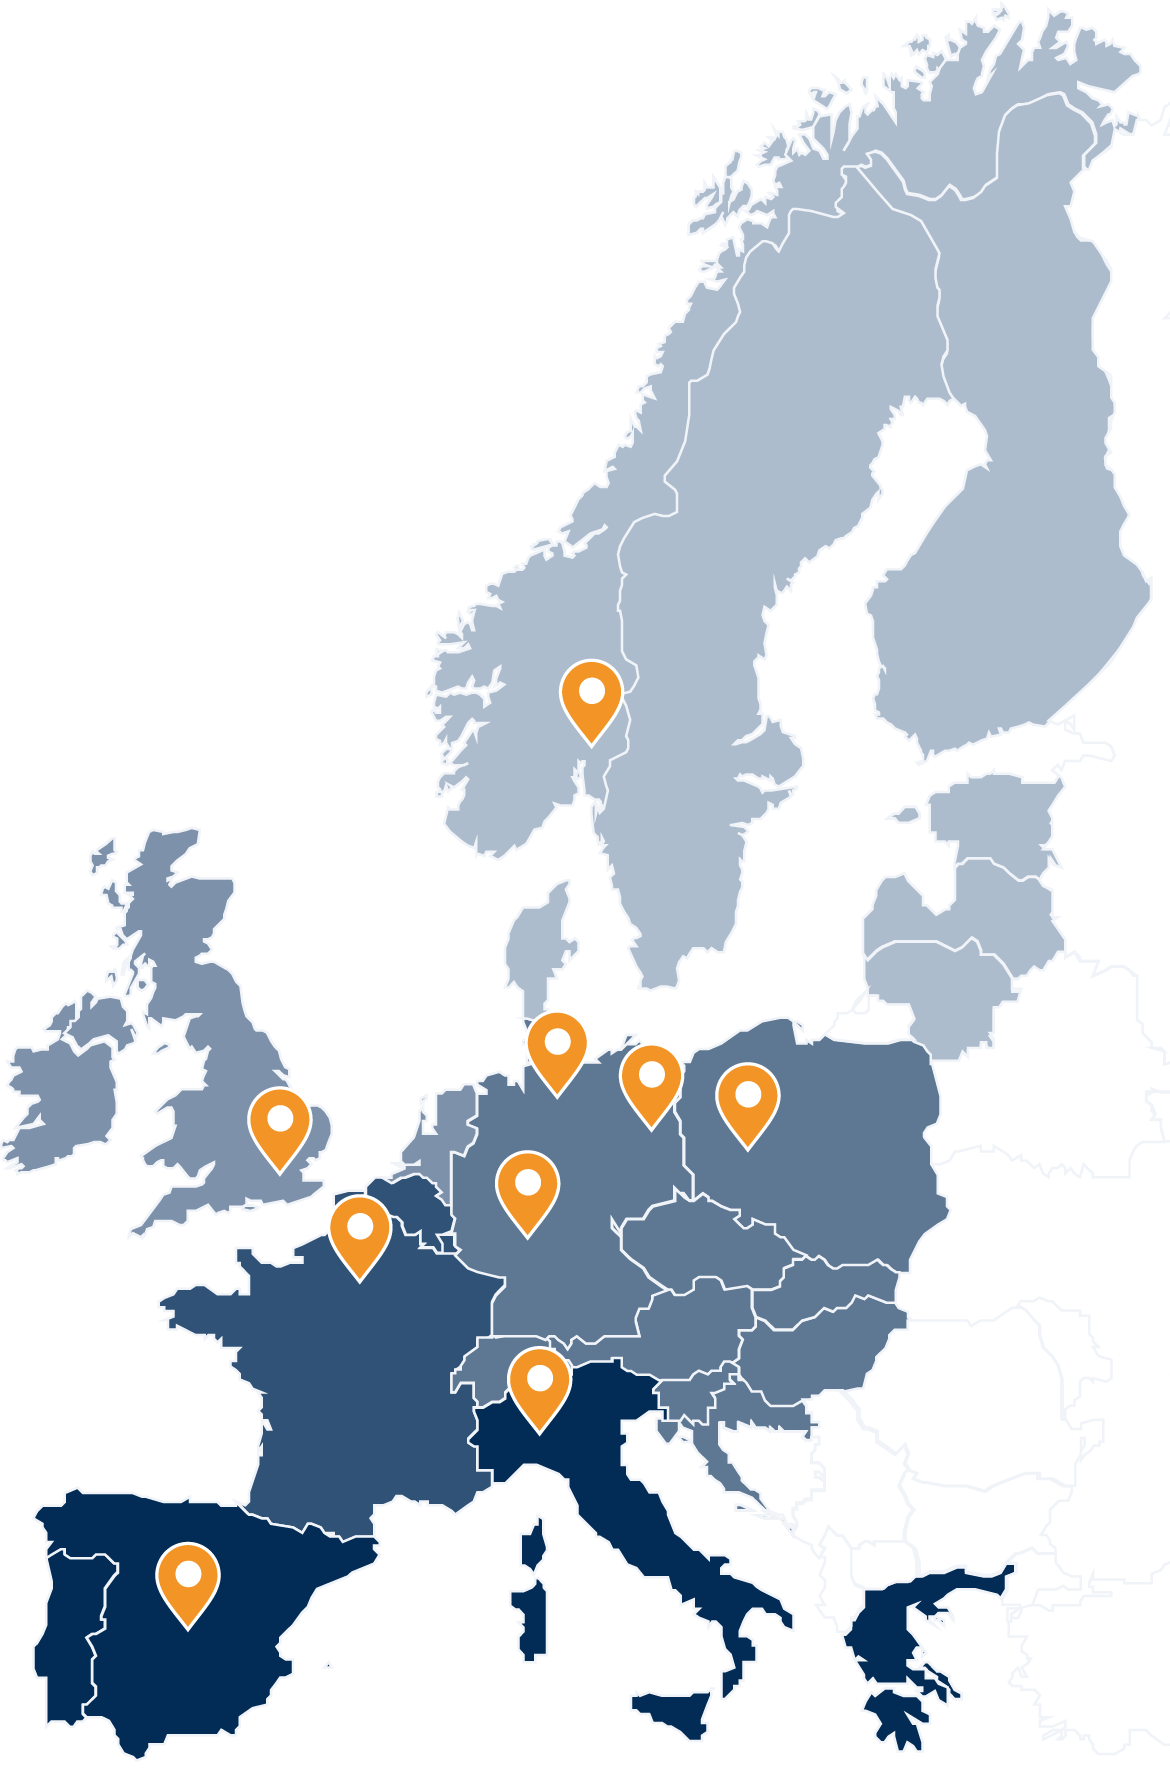 Presence in Europe Scope Group